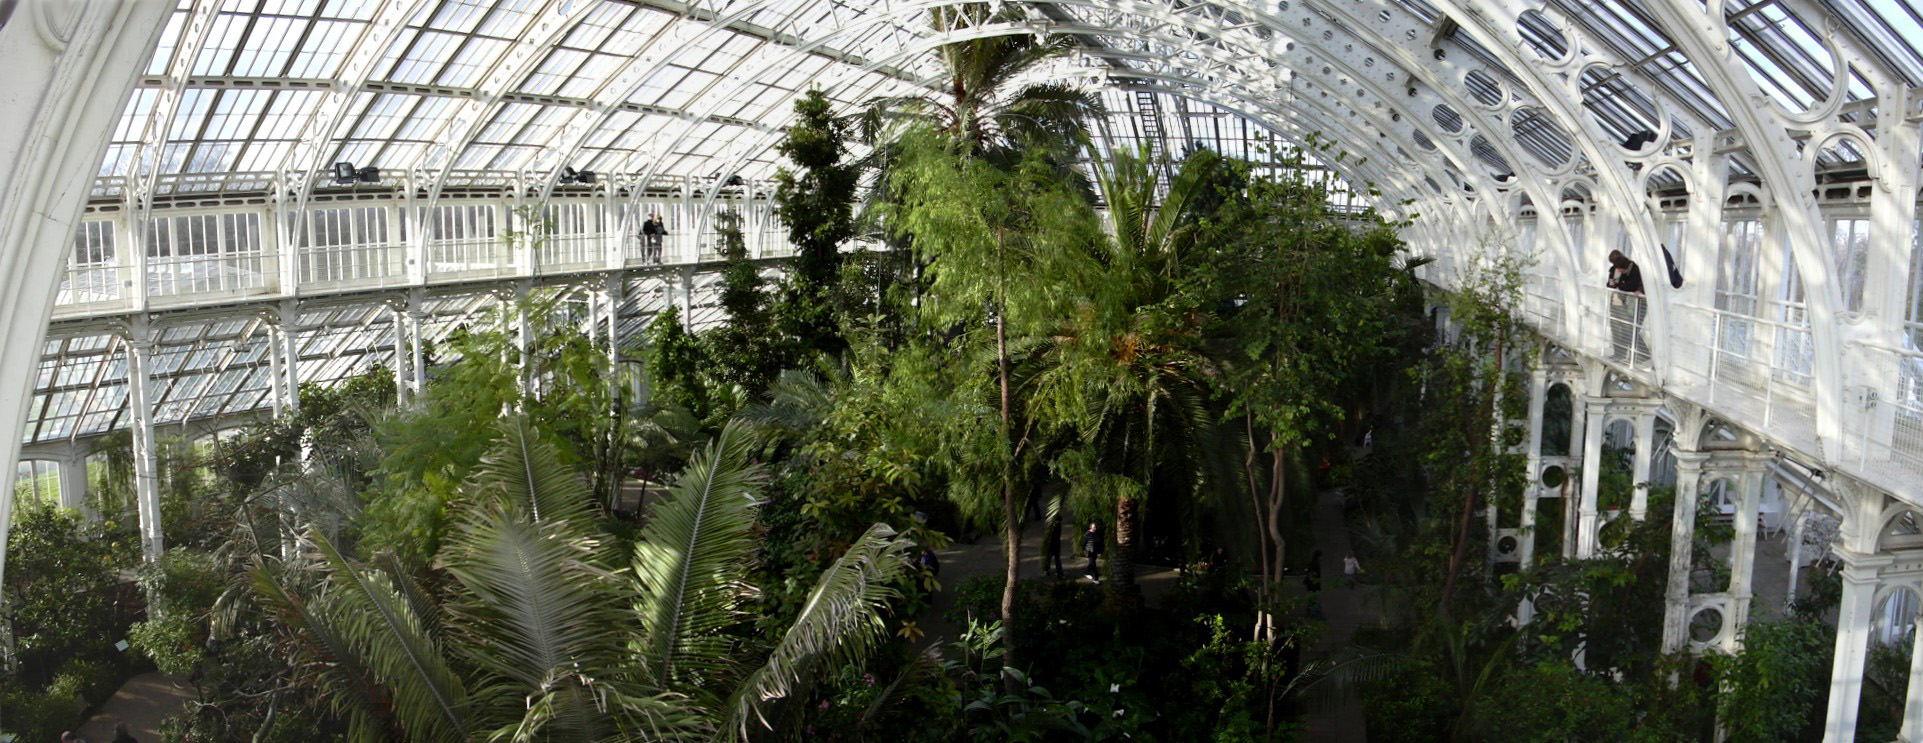 File kew gardens greenhouse jpg for Jardin botanico de kew